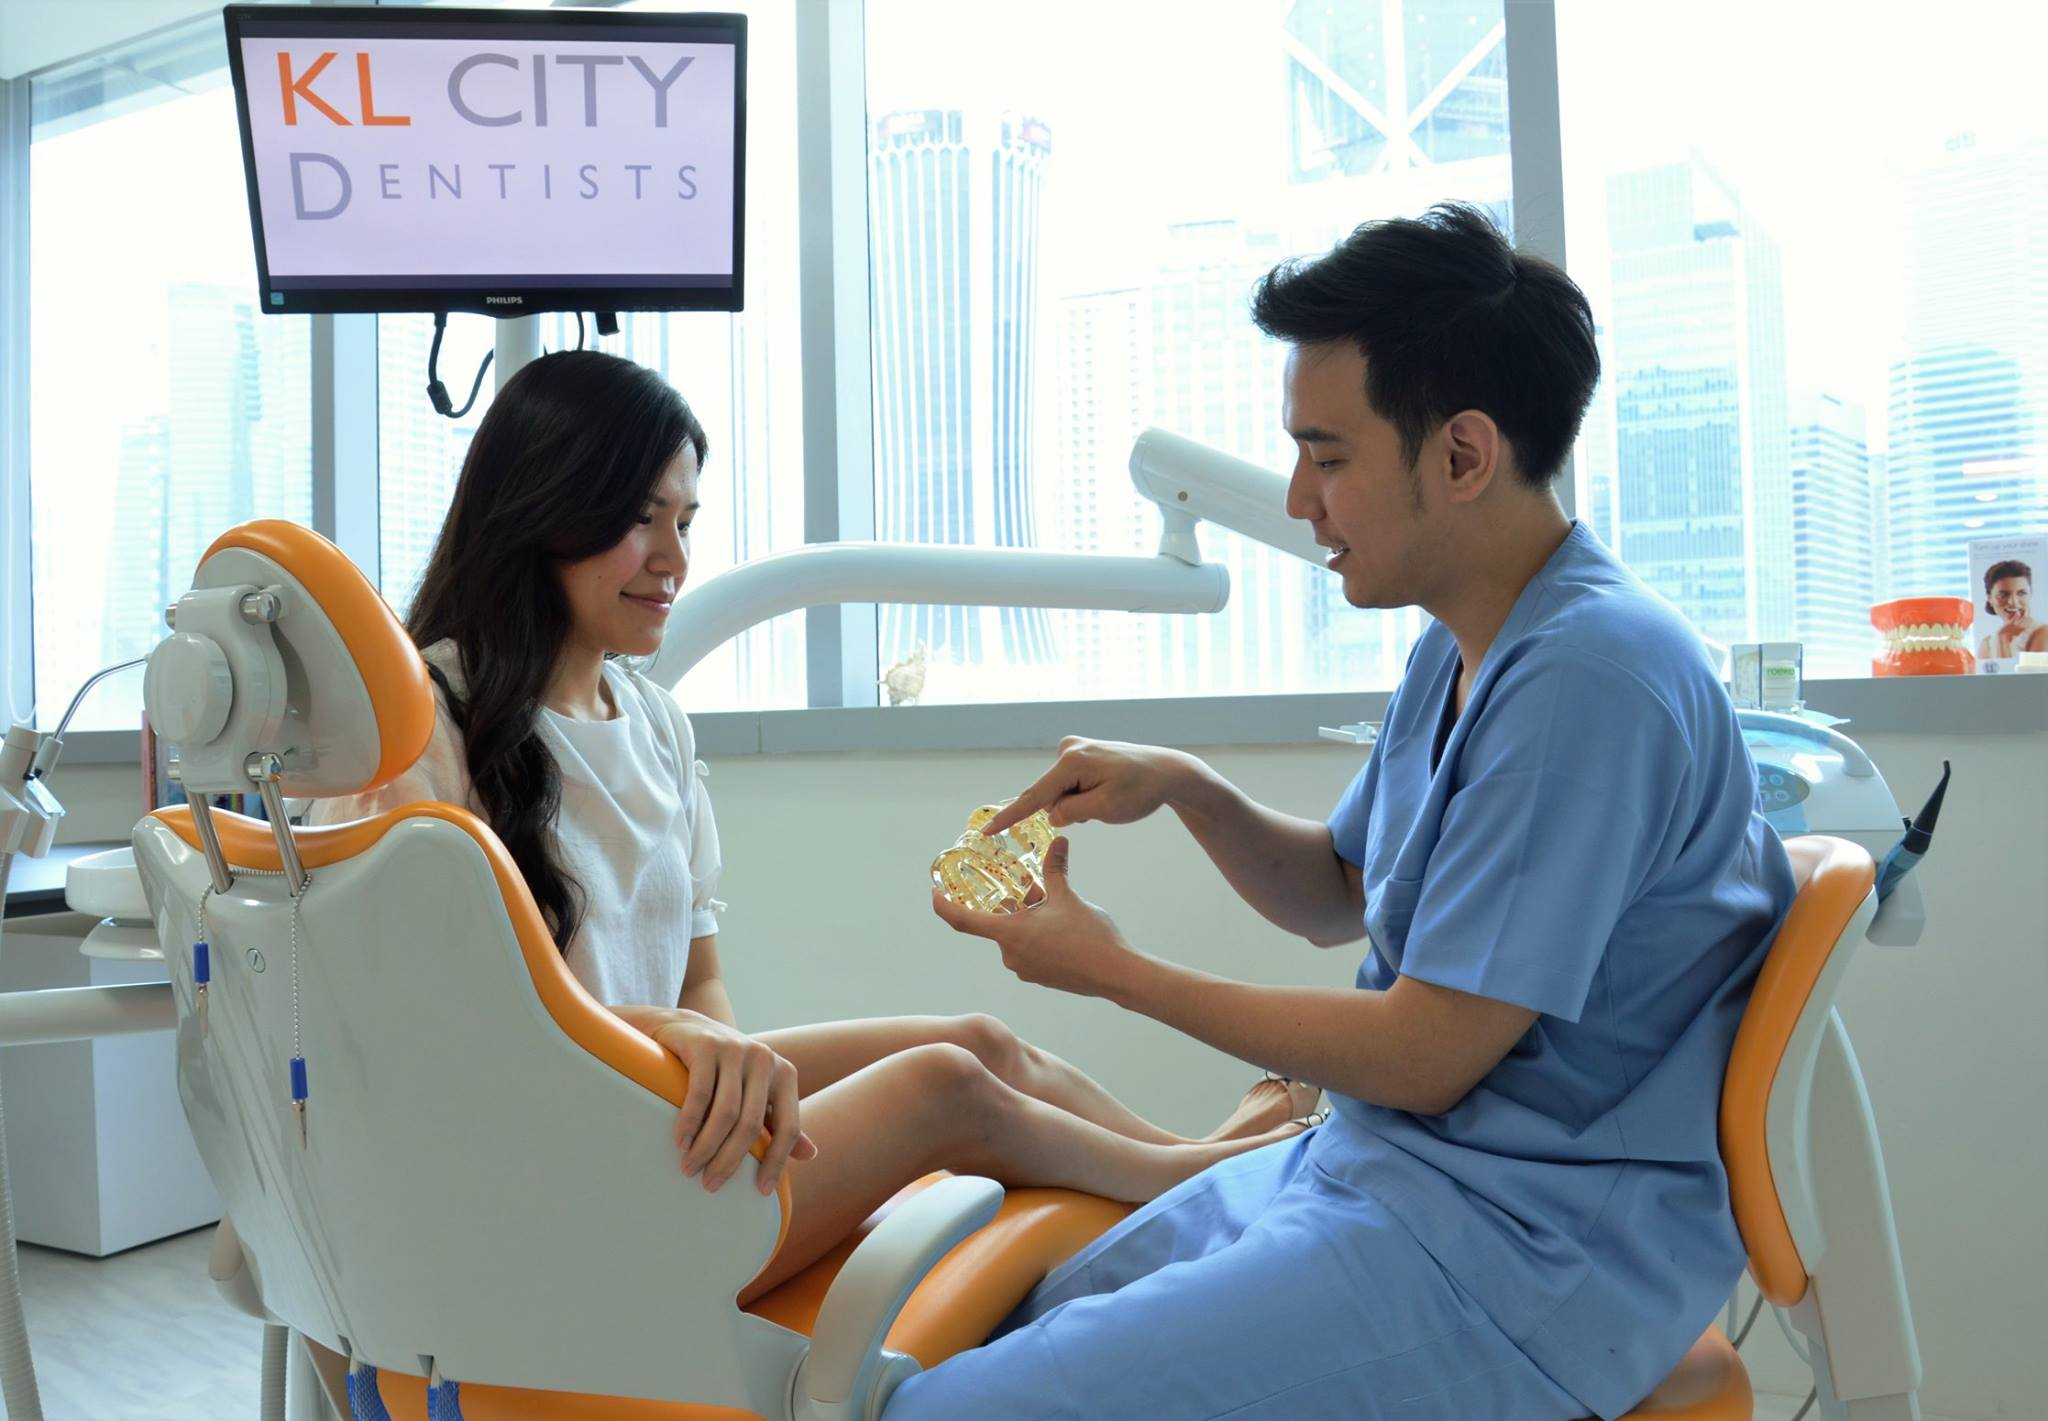 KL City Dentists